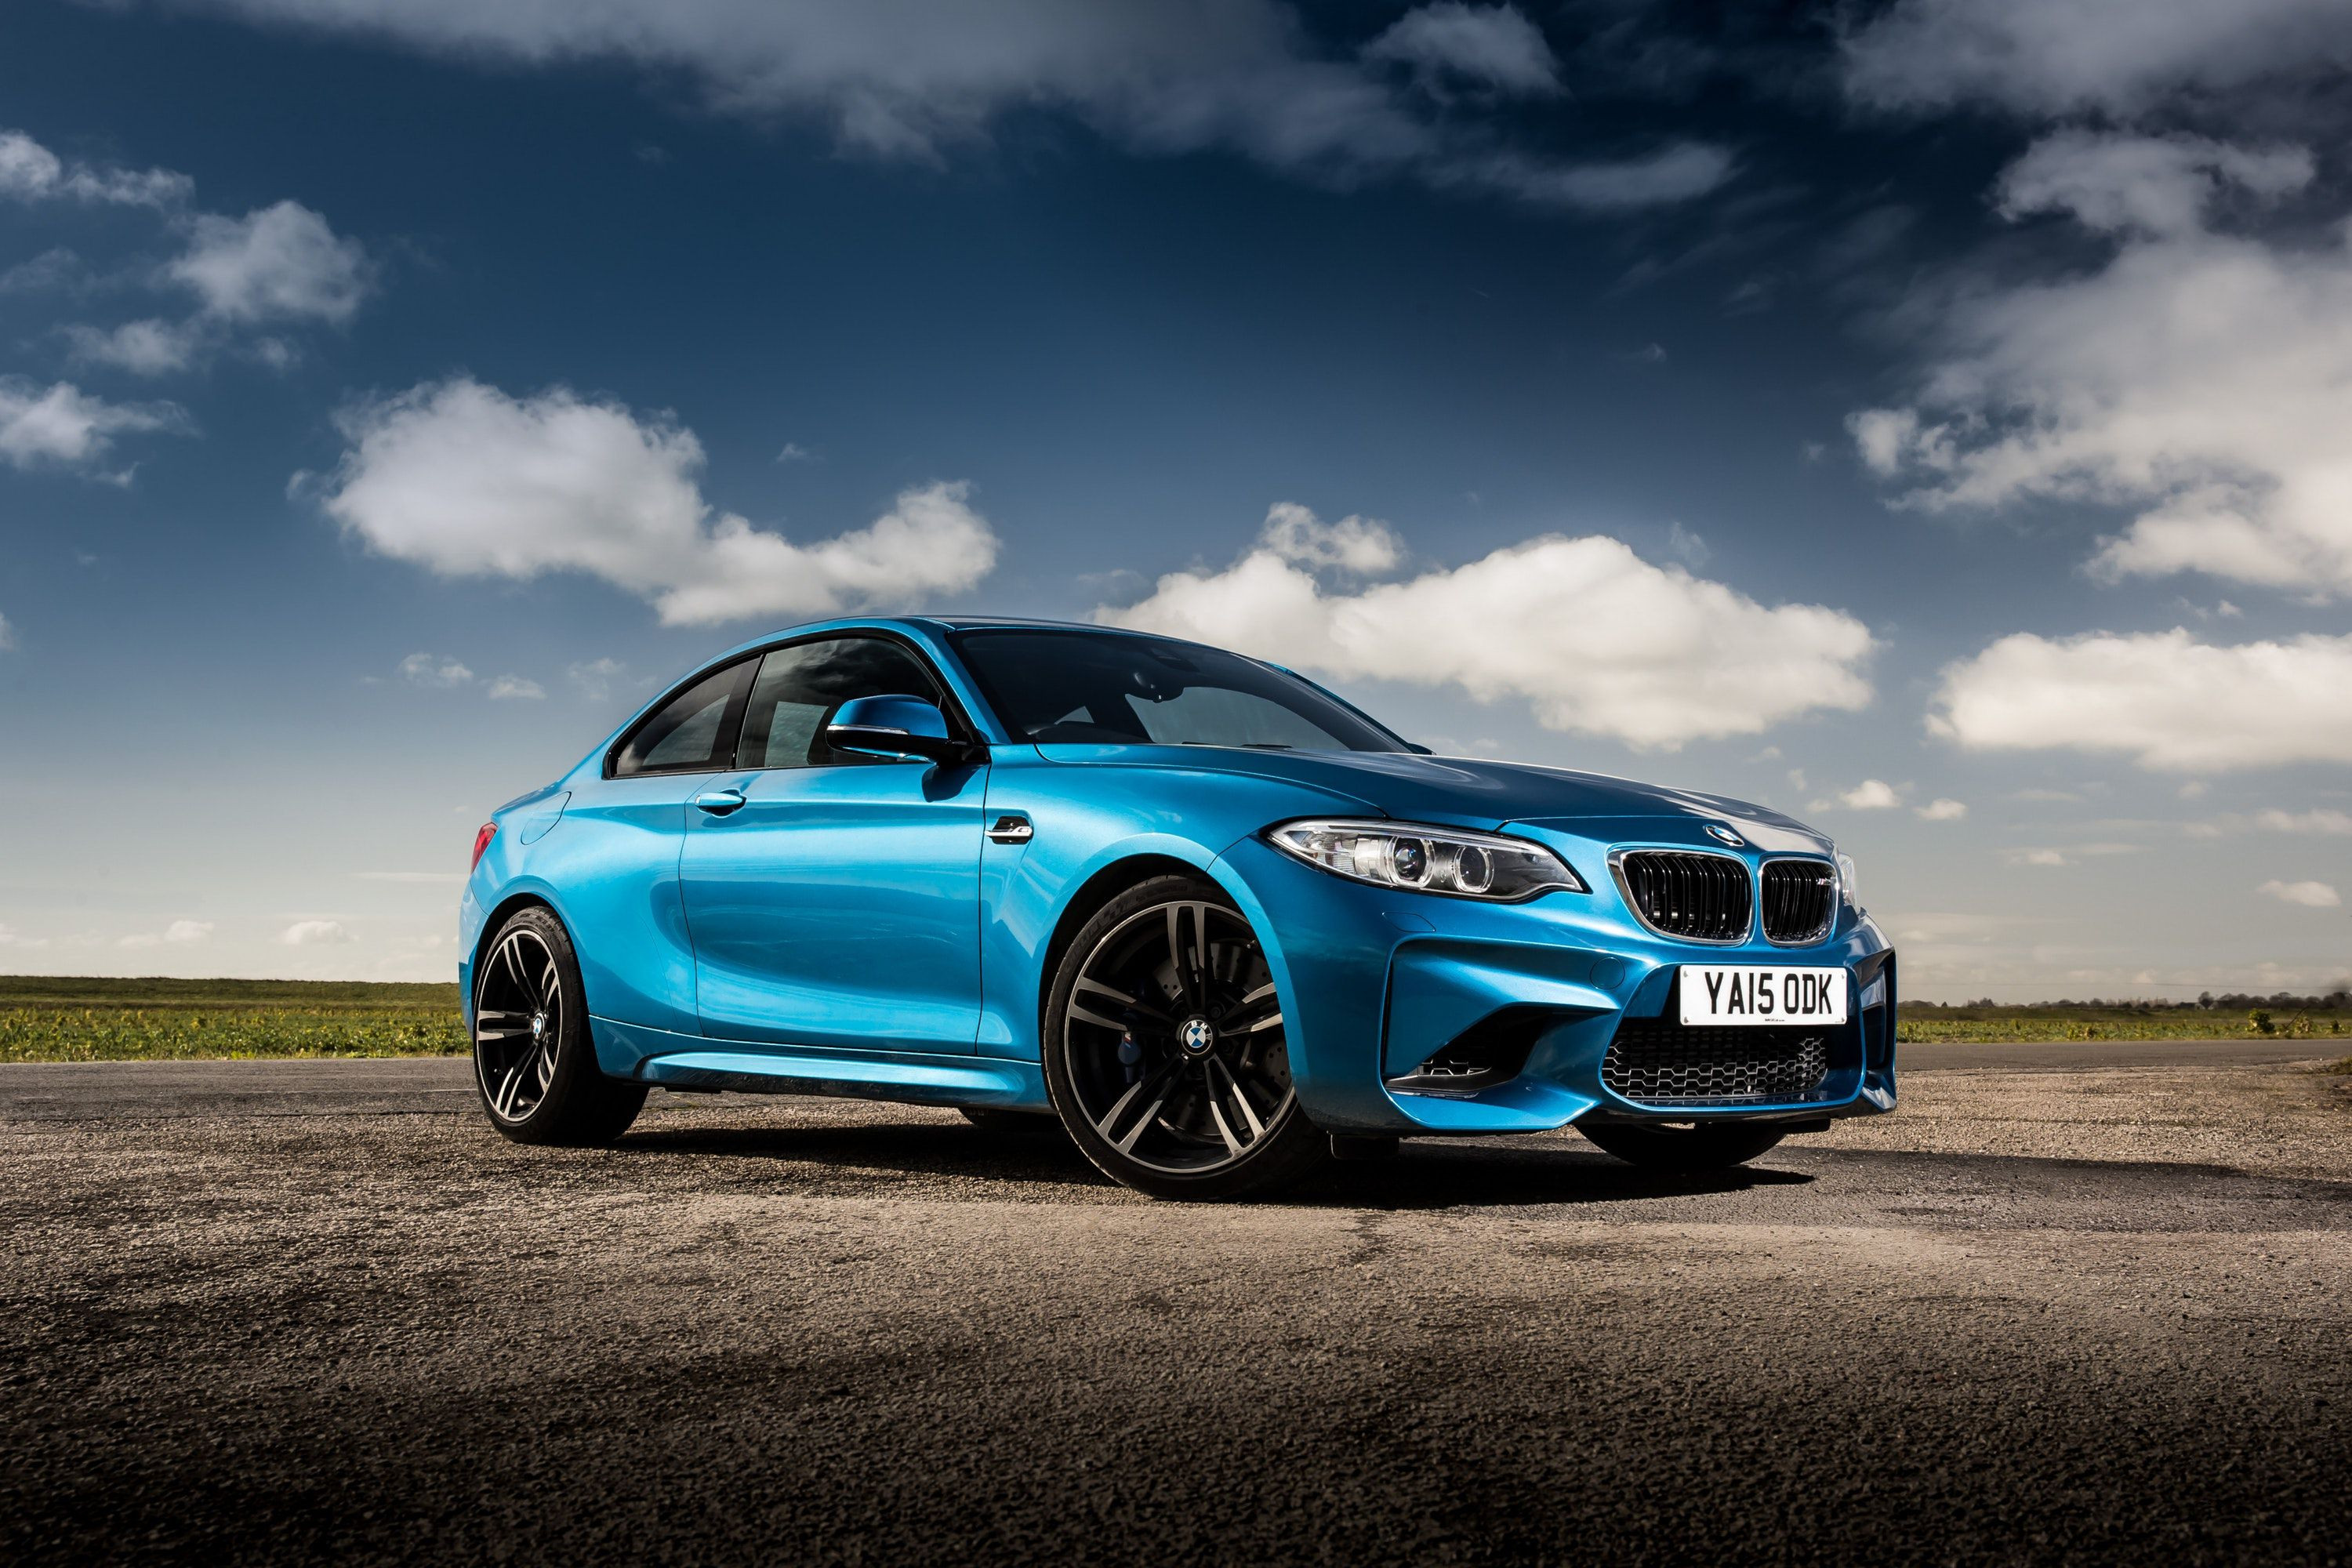 Blue BMW M2 3 door car with black alloy wheels